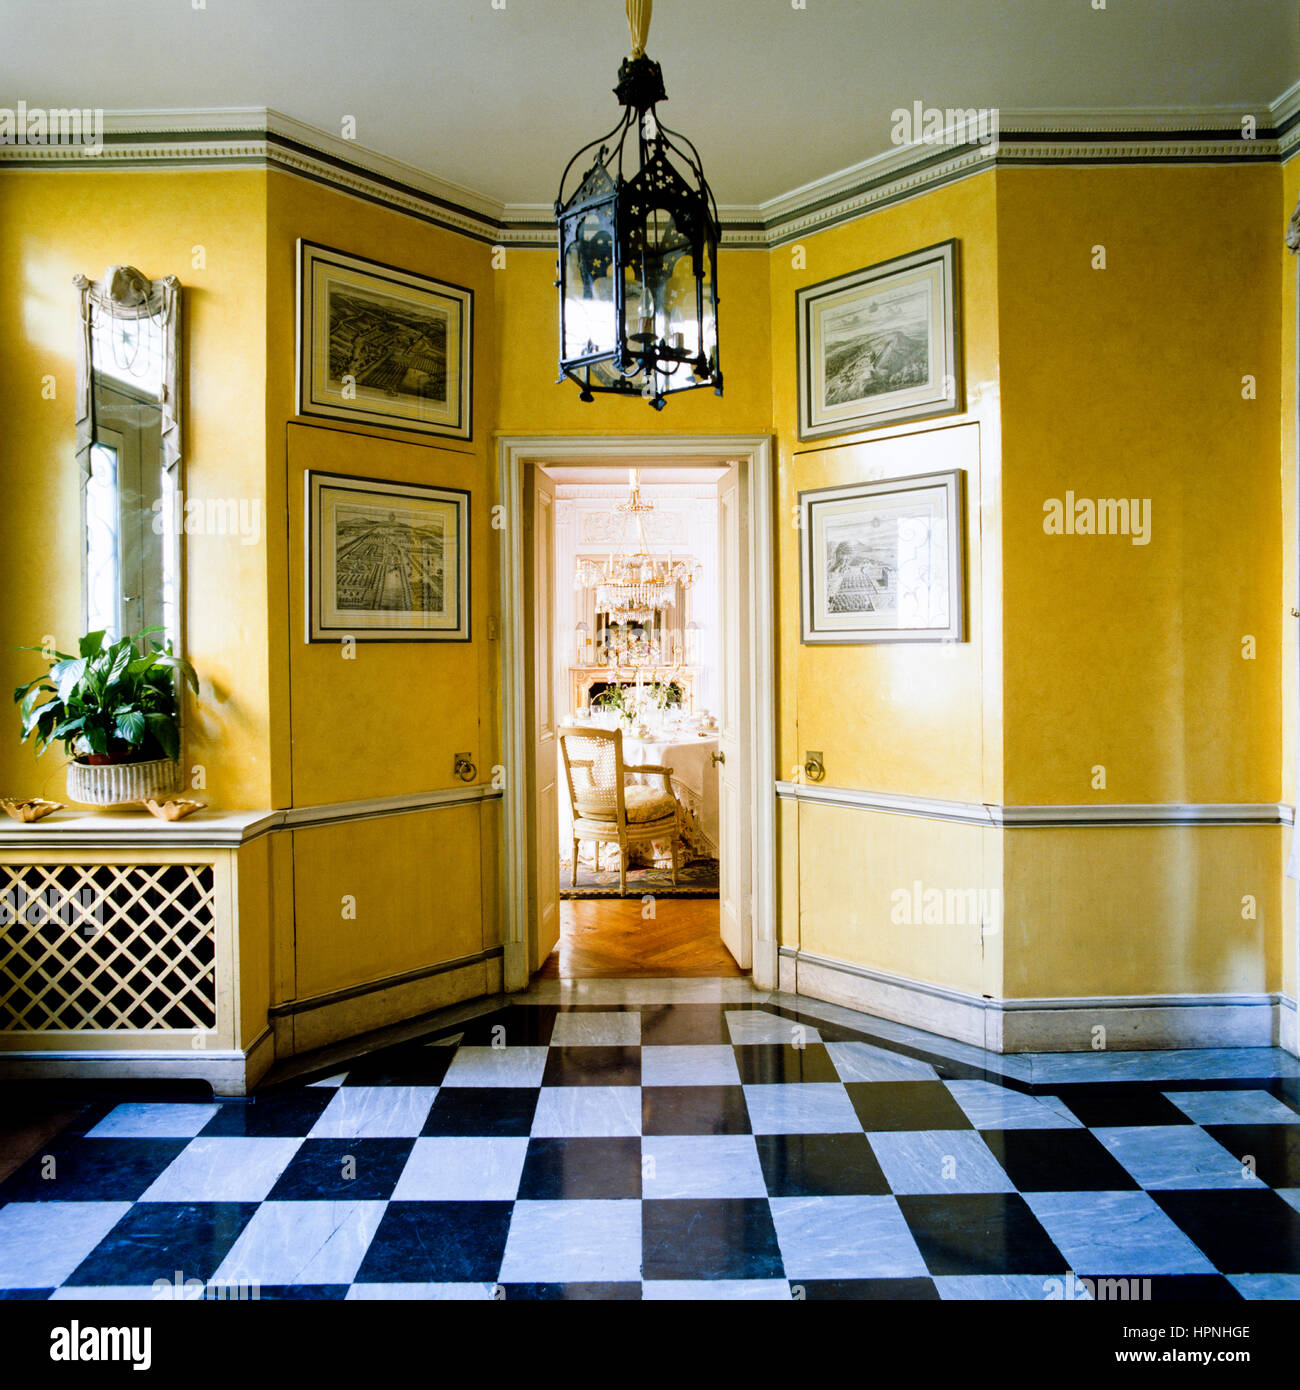 a hallway with yellow walls and checkered flooring stock photo